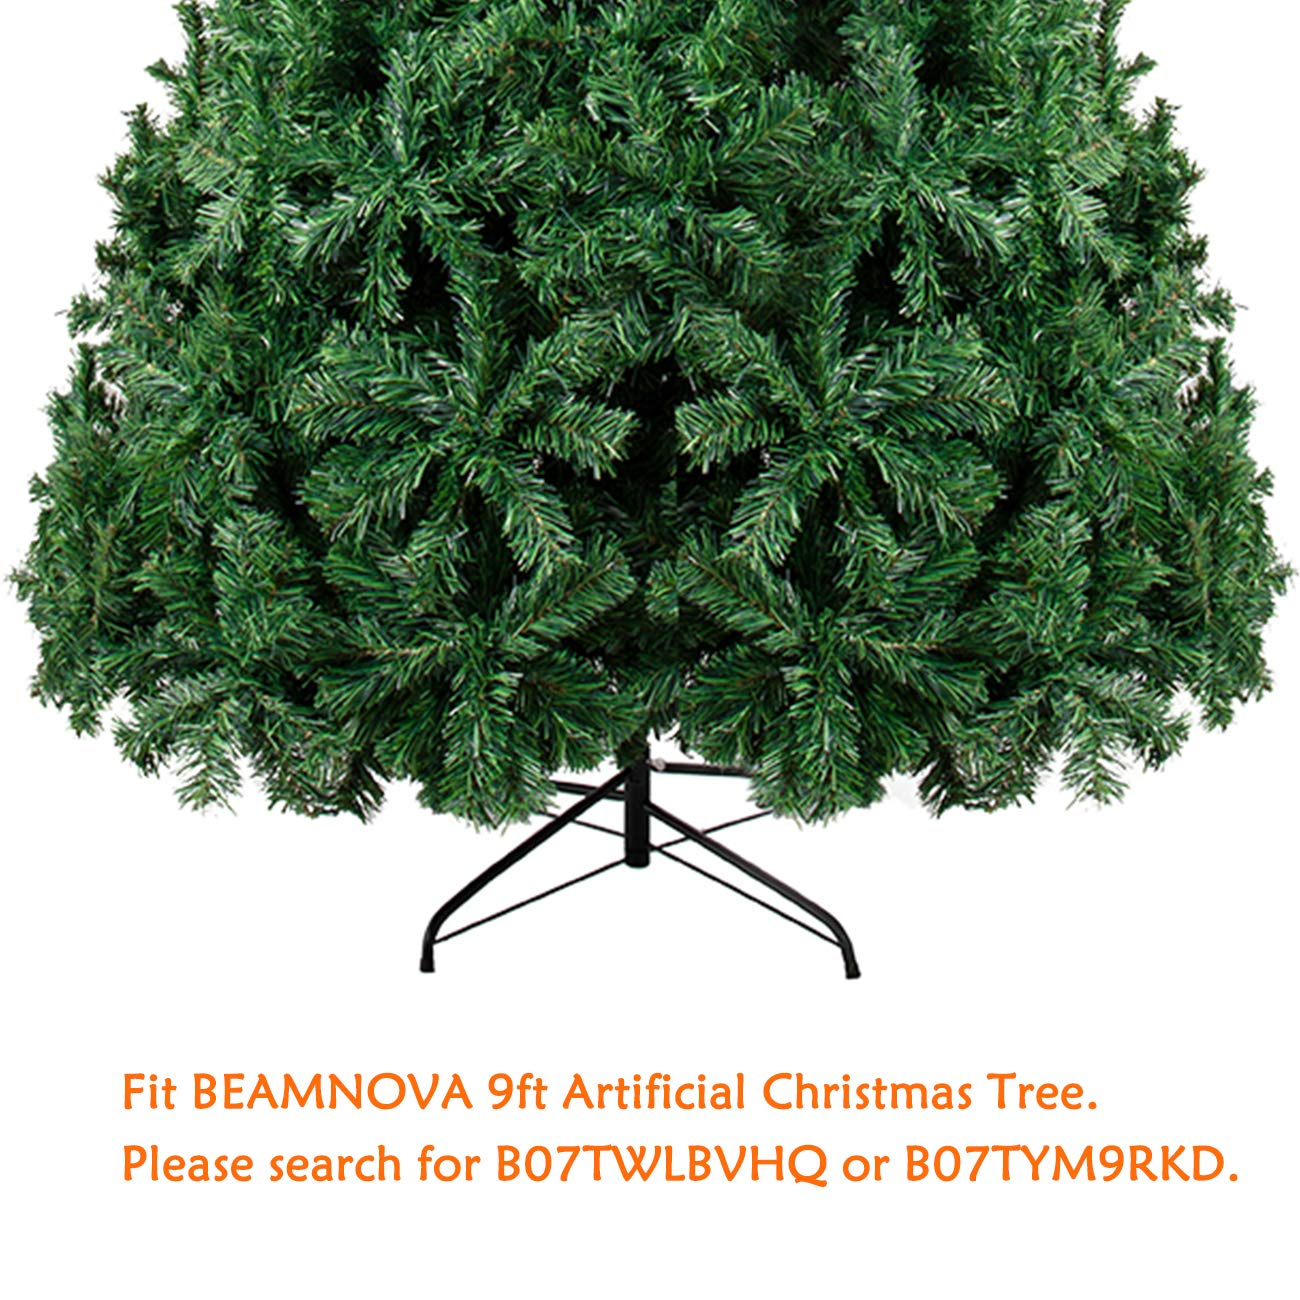 60cm, for 9ft Tall Tree BEAMNOVA Christmas Tree Stand for Artificial Trees Iron 4 Legs Indoor Outdoor